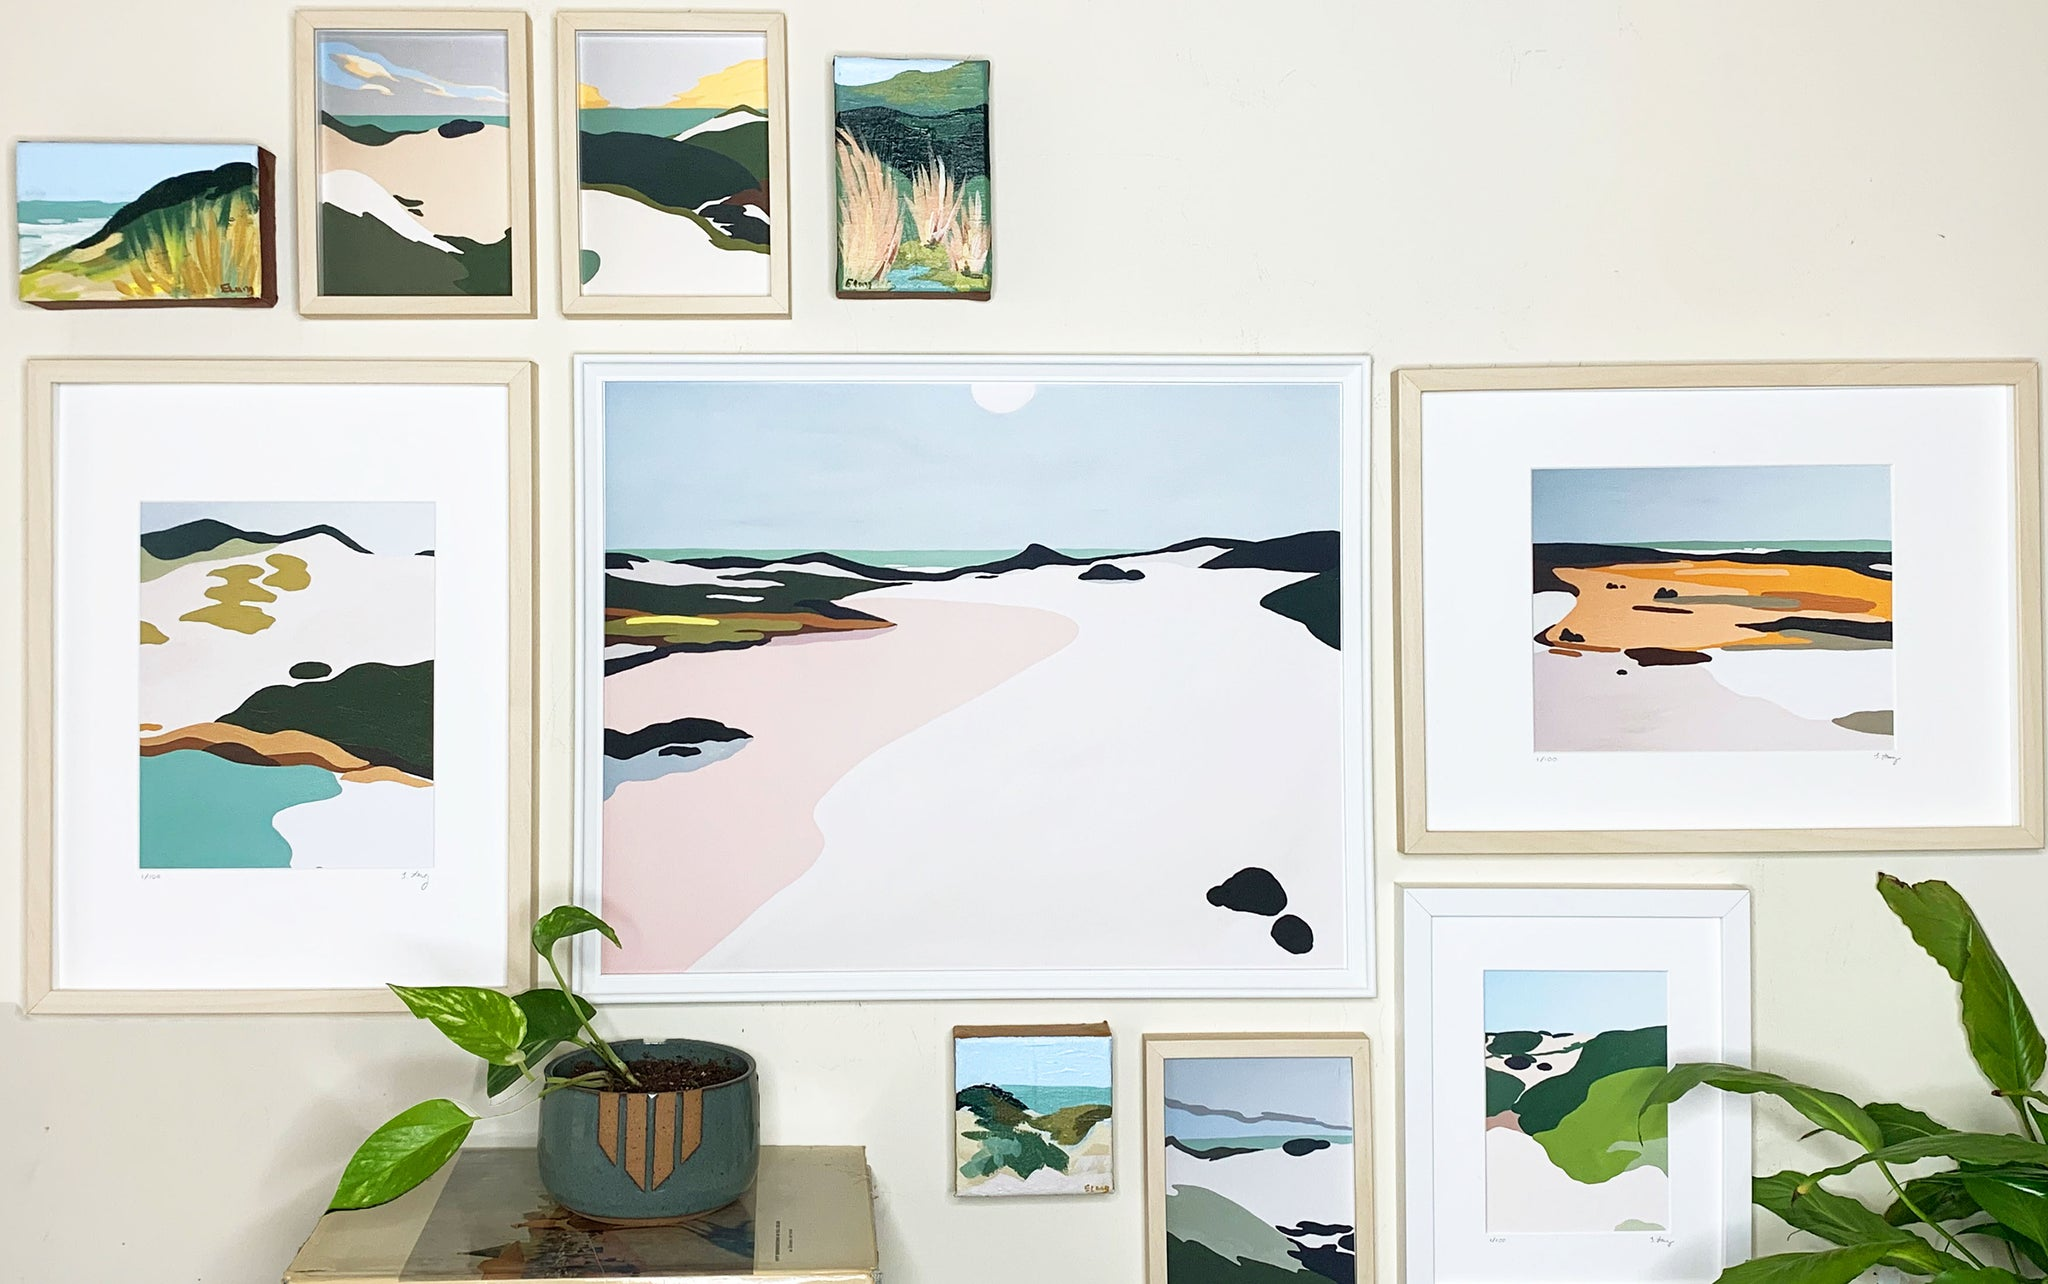 How to Make a Beautiful Gallery Wall